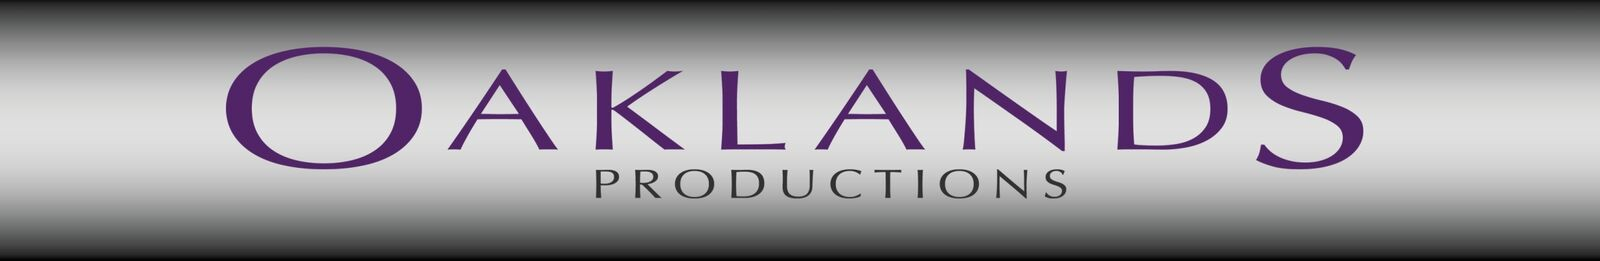 Oaklands Productions